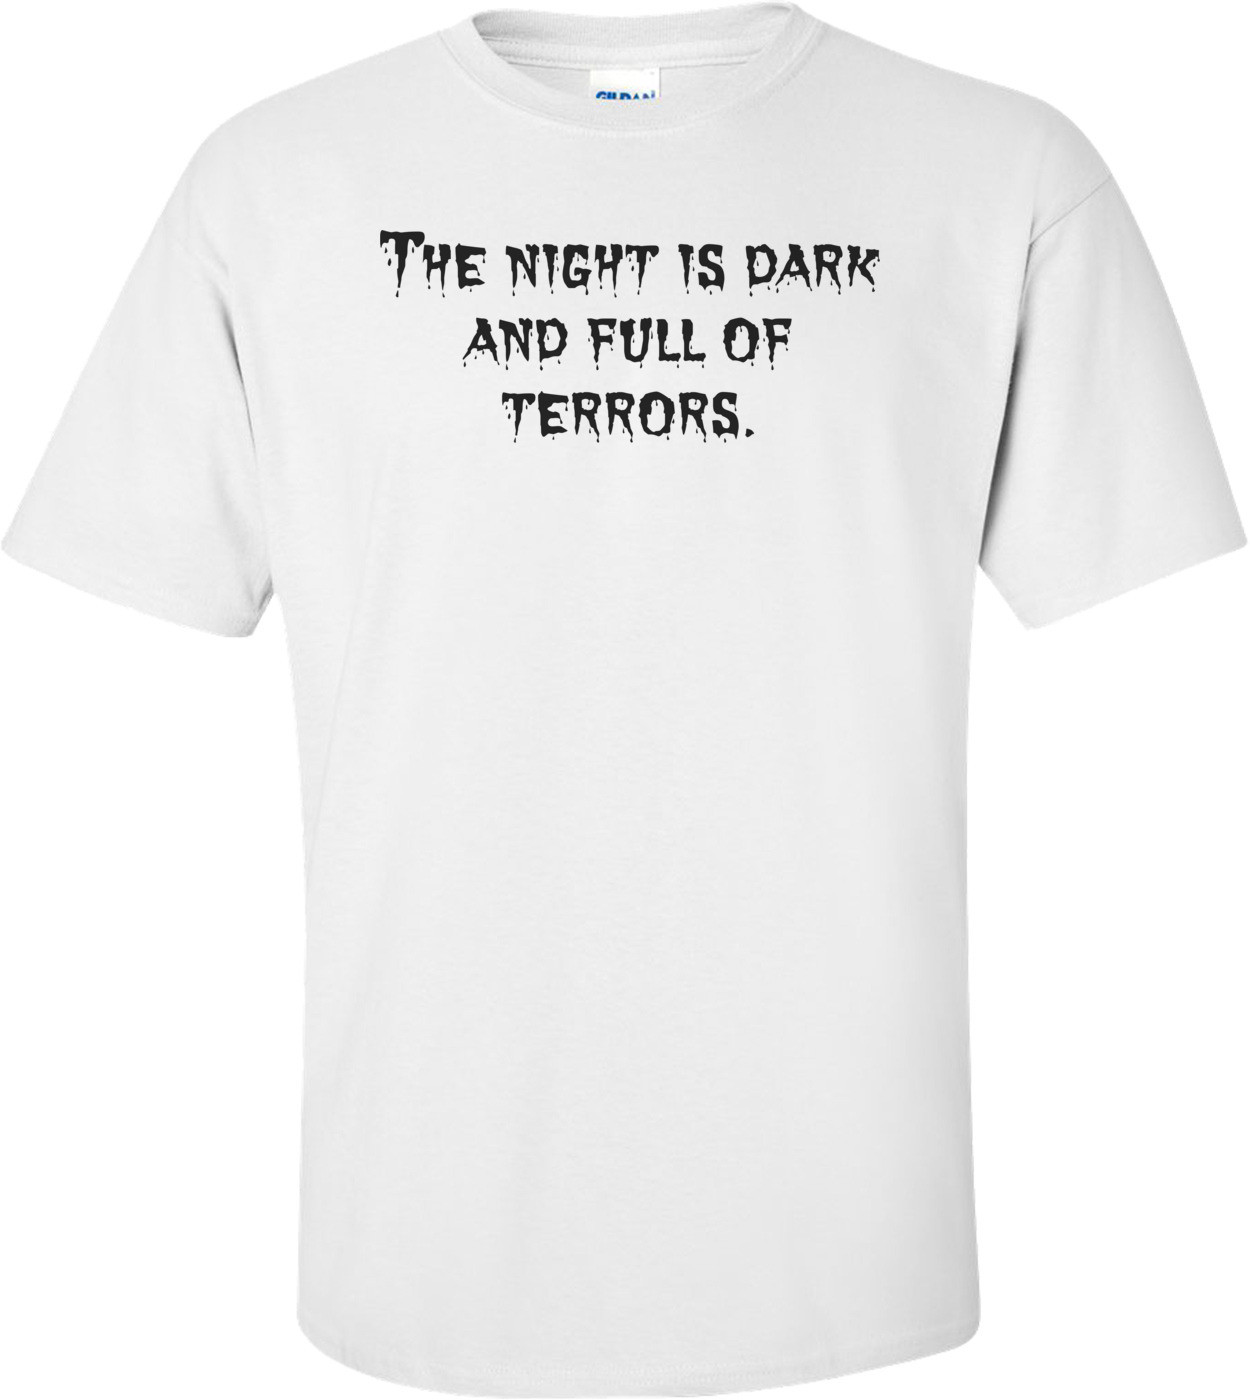 The night is dark and full of terrors. Shirt